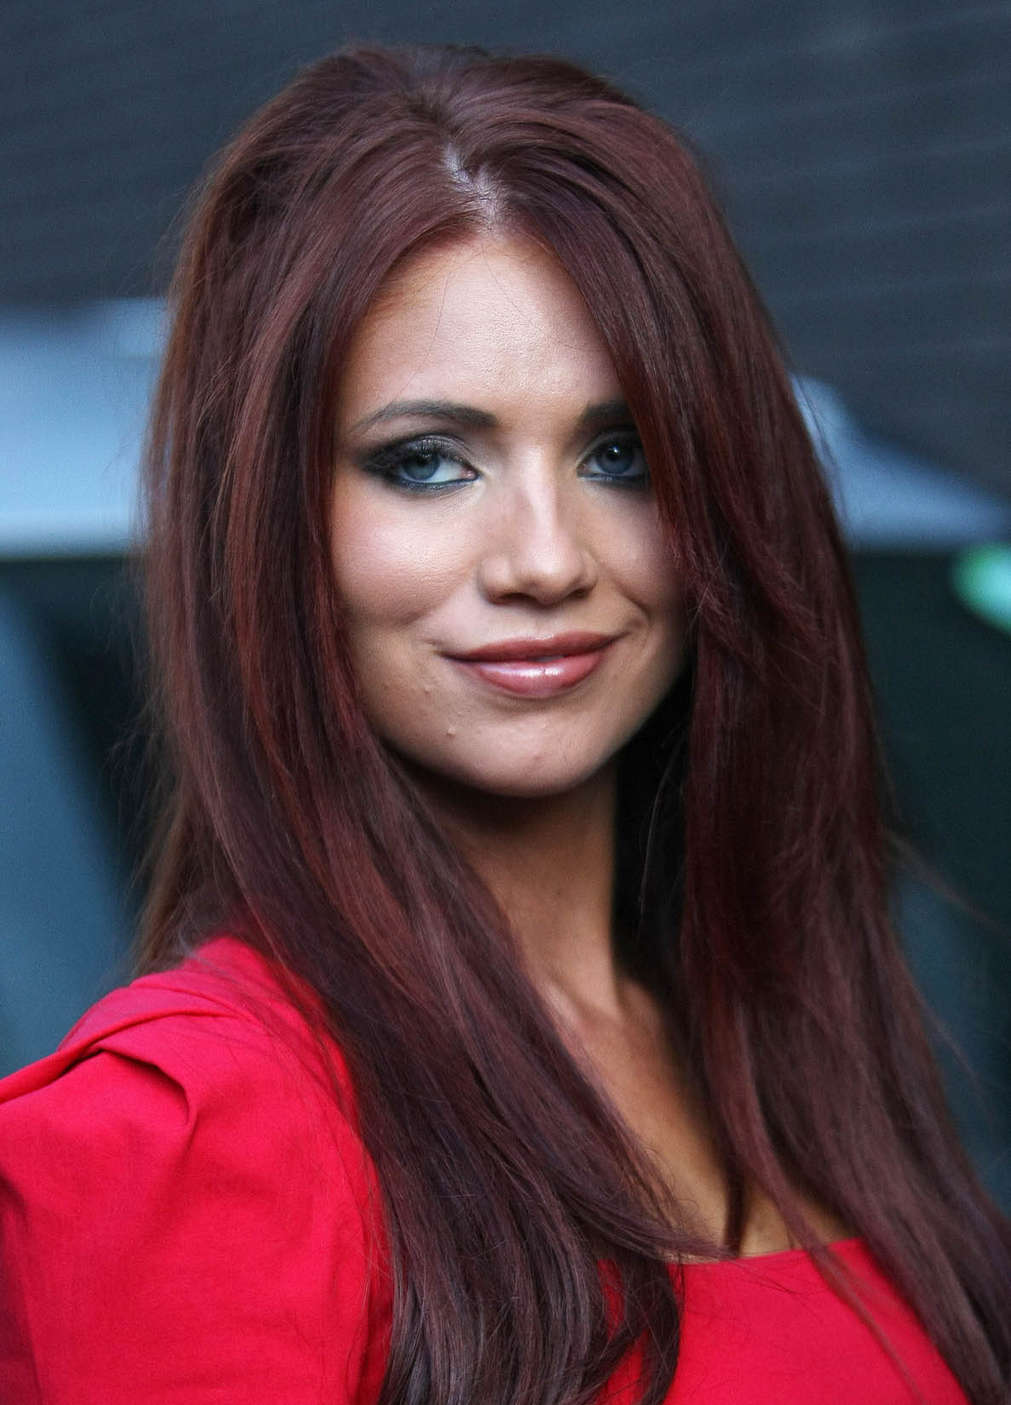 d92a73b9f1c Amy Childs Hot In Red Dress in London-14 – GotCeleb